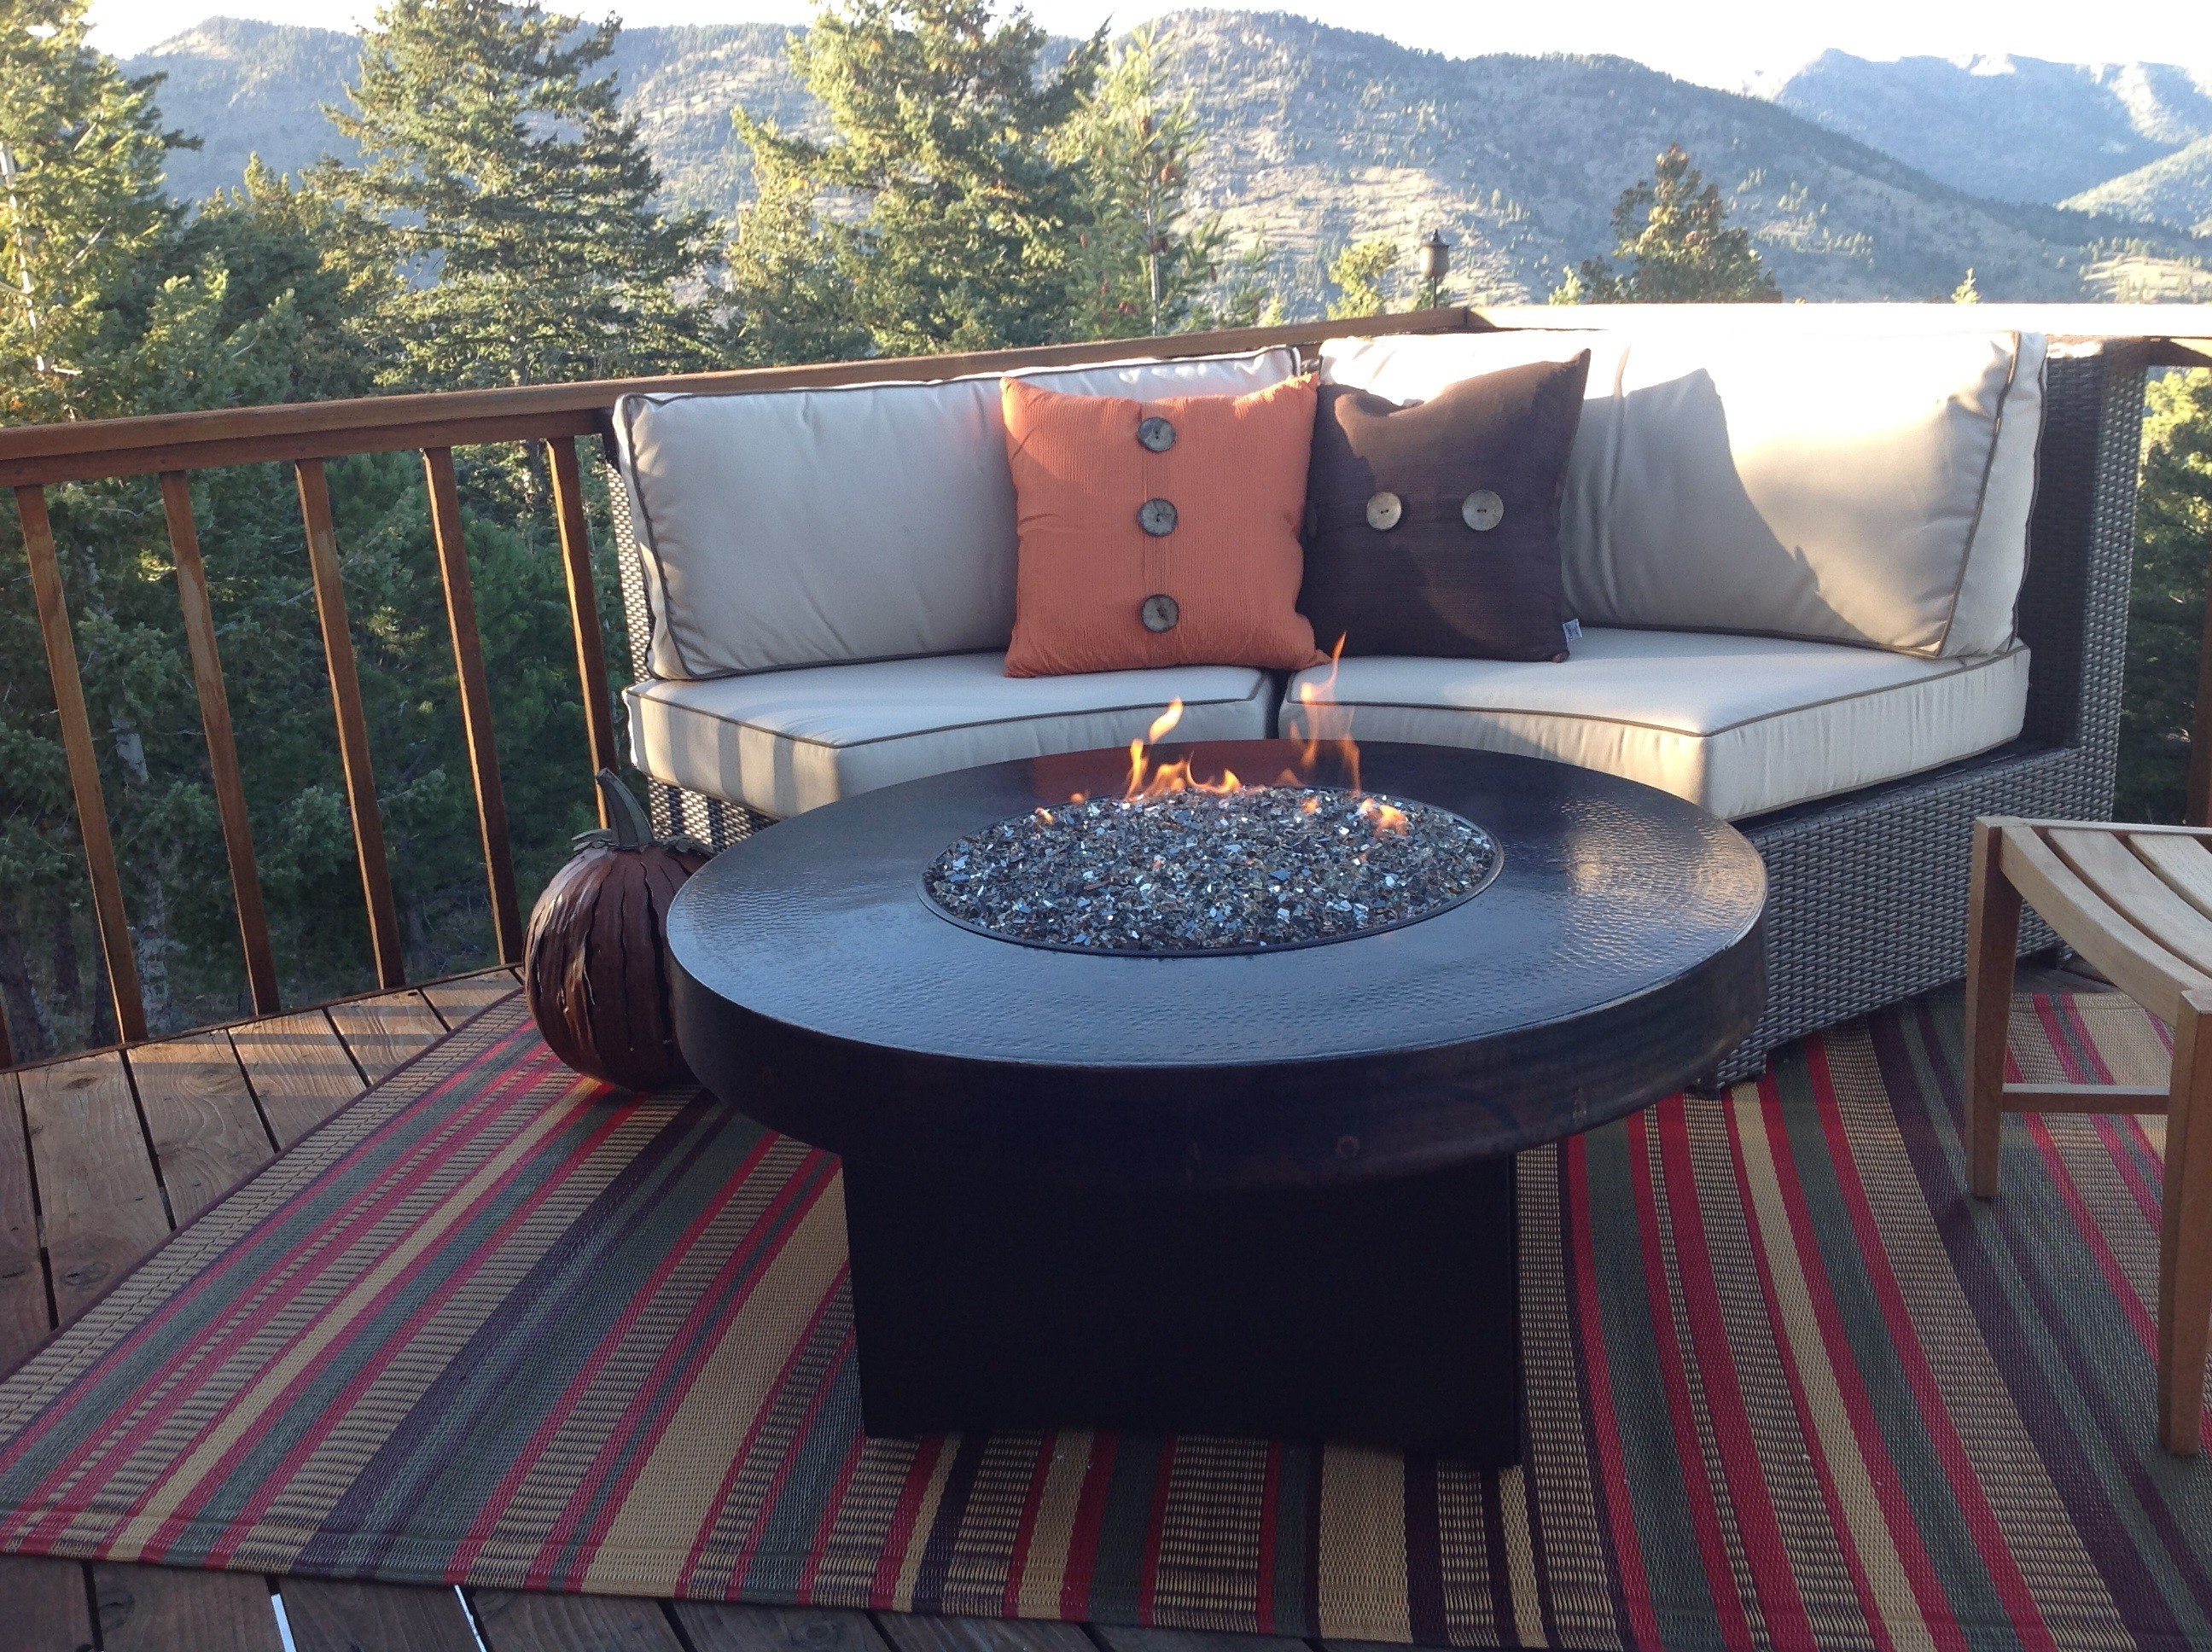 Warm Stripes Mad Mats Recycled Plastic Outdoor Rugs Wicker Sofa Orange Brown Cushions Wooden Round